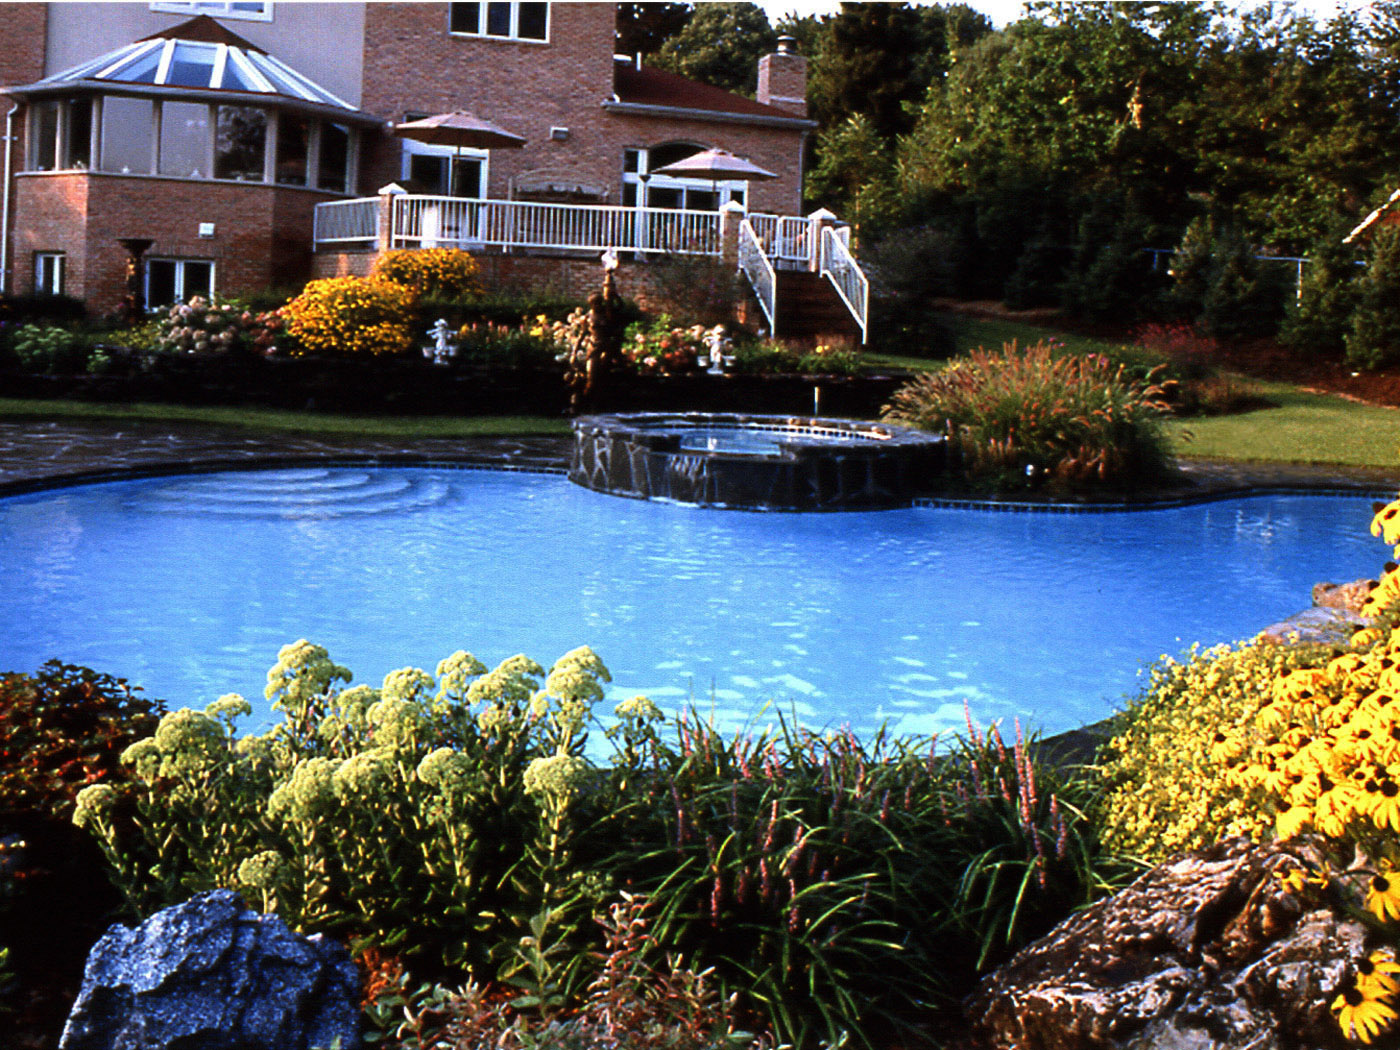 Stone pool jacuzzi and waterfall with beautiful planting in Brookville.